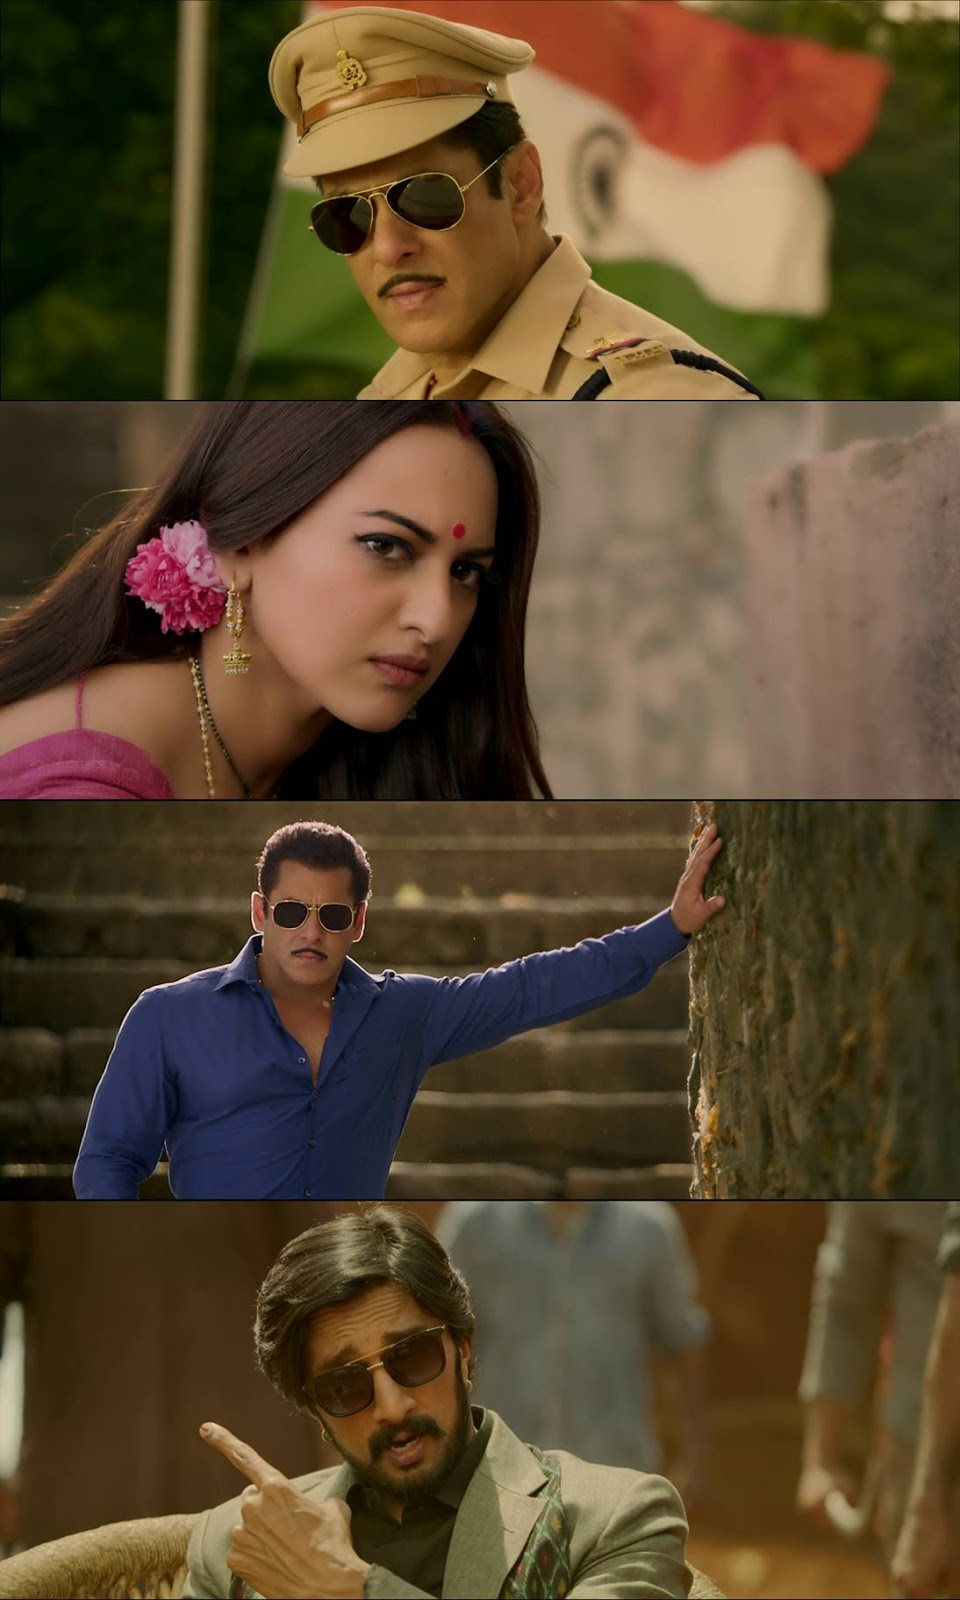 Dabangg 3 (2019) Hindi 720p WEB-DL 950MB Desirehub